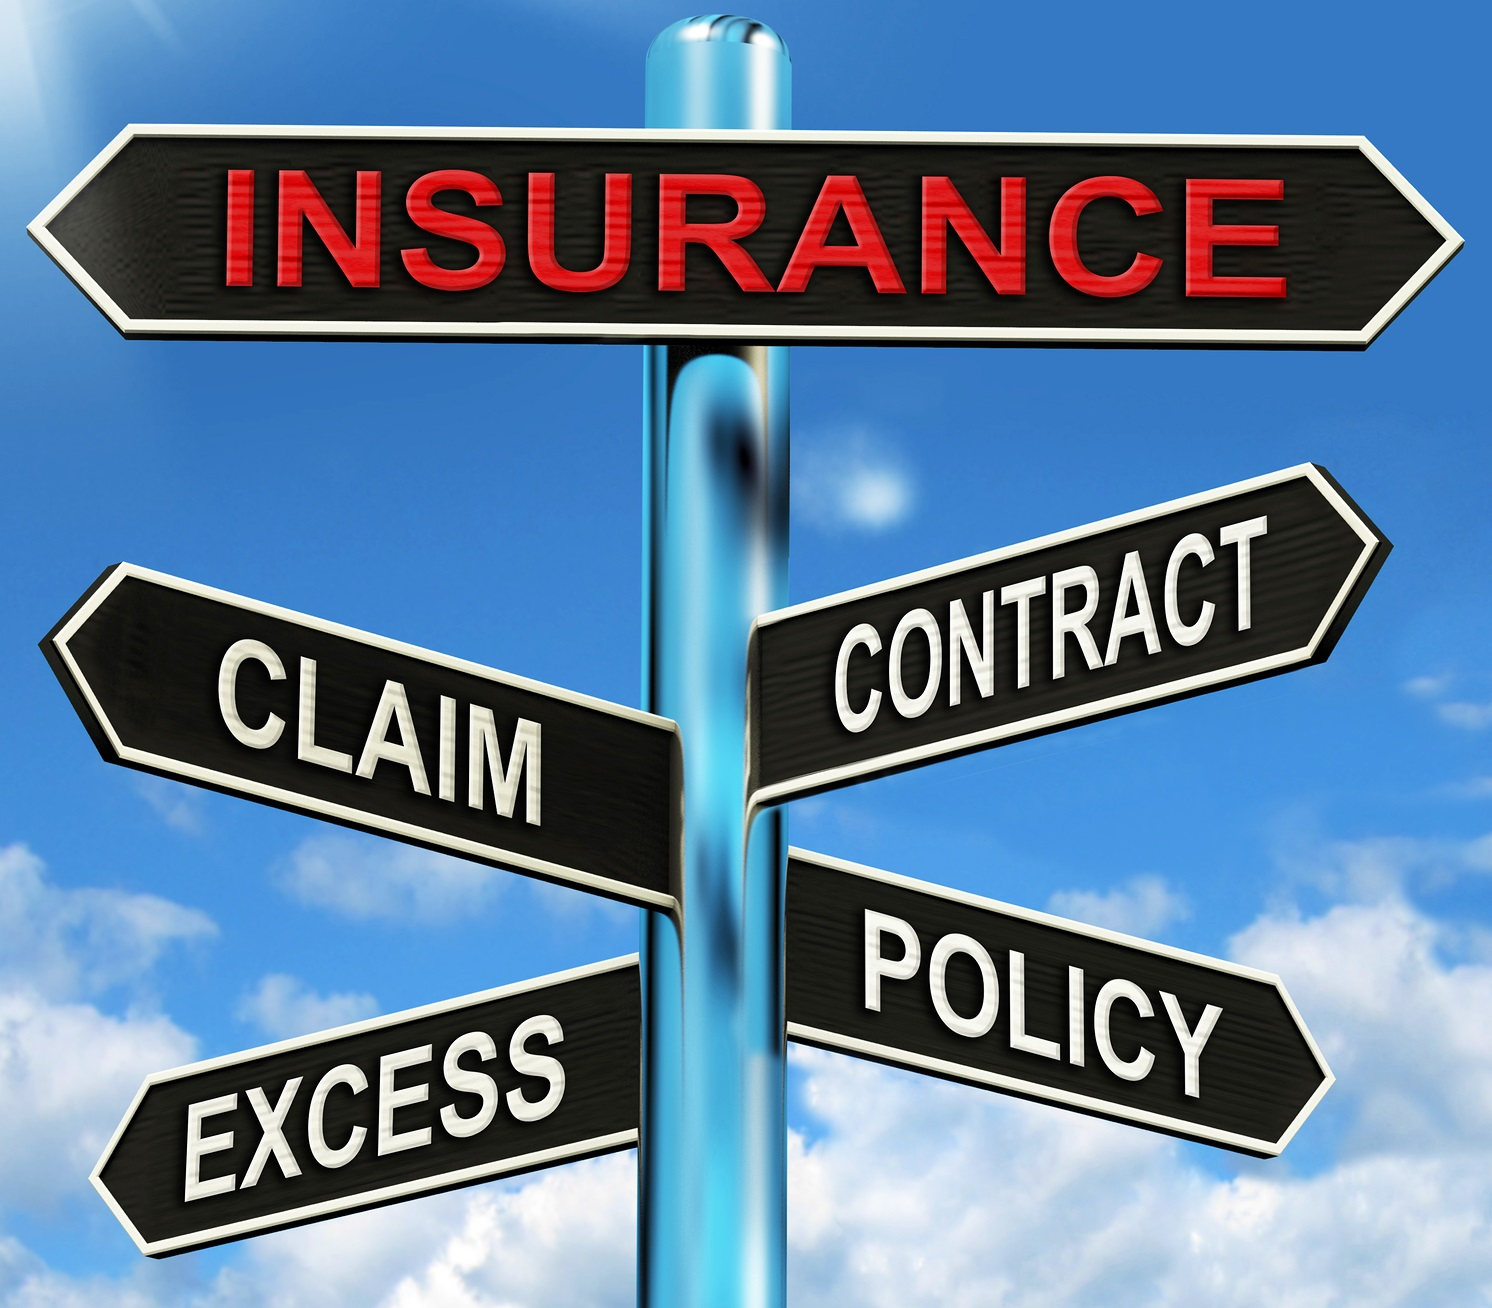 Insurance Signpost Mean Claim Excess Contract And Policy